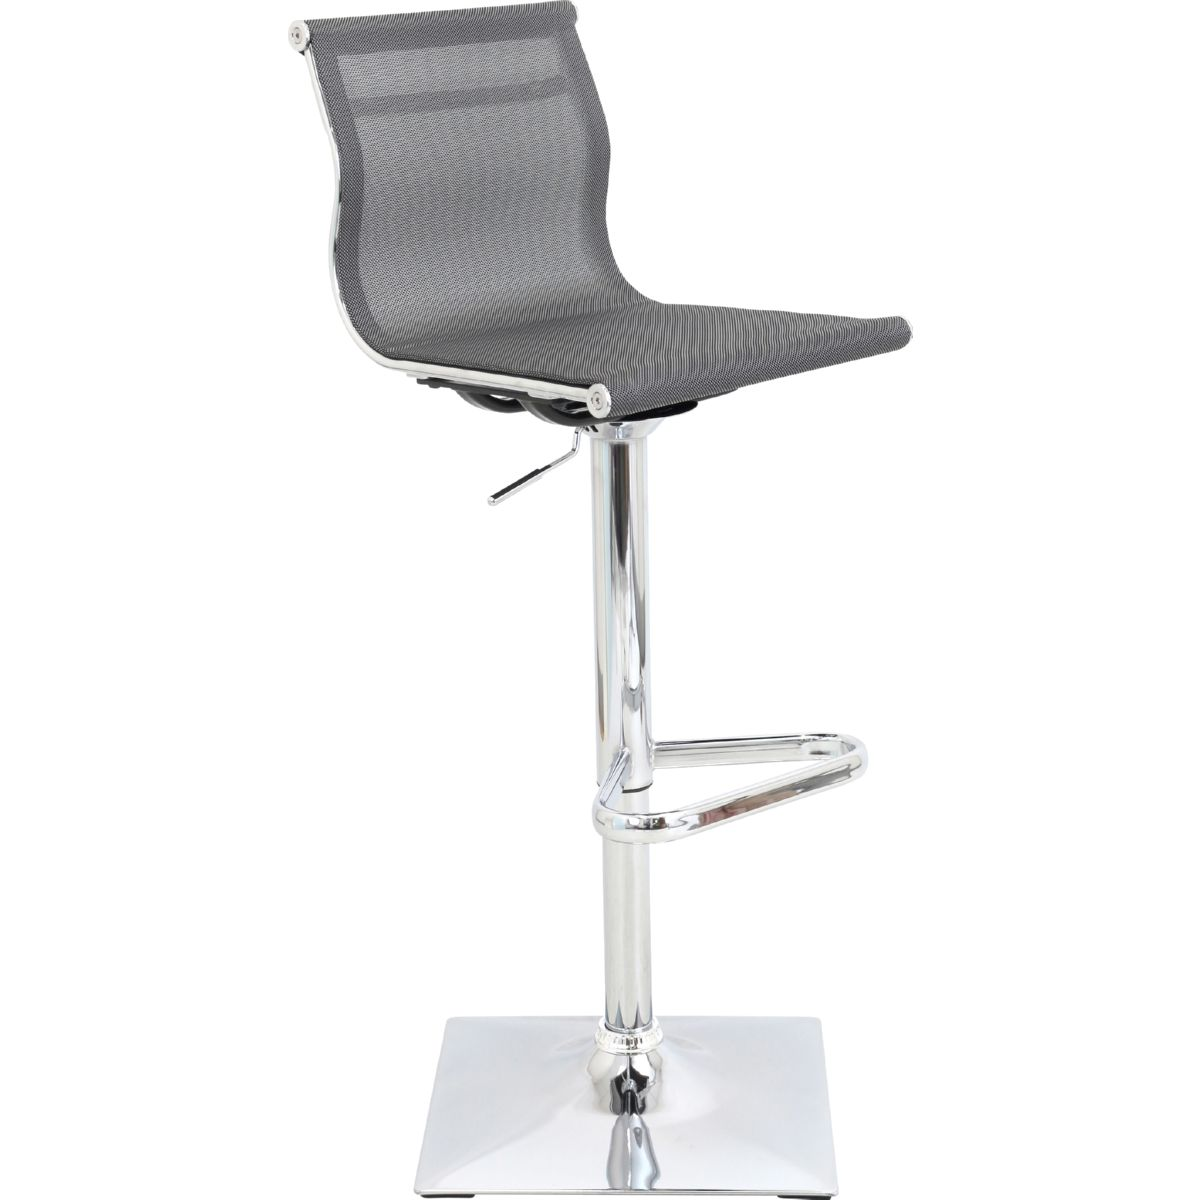 Lumisource Bs Tw Mirage Sv Mirage Bar Stool In Silver Mesh